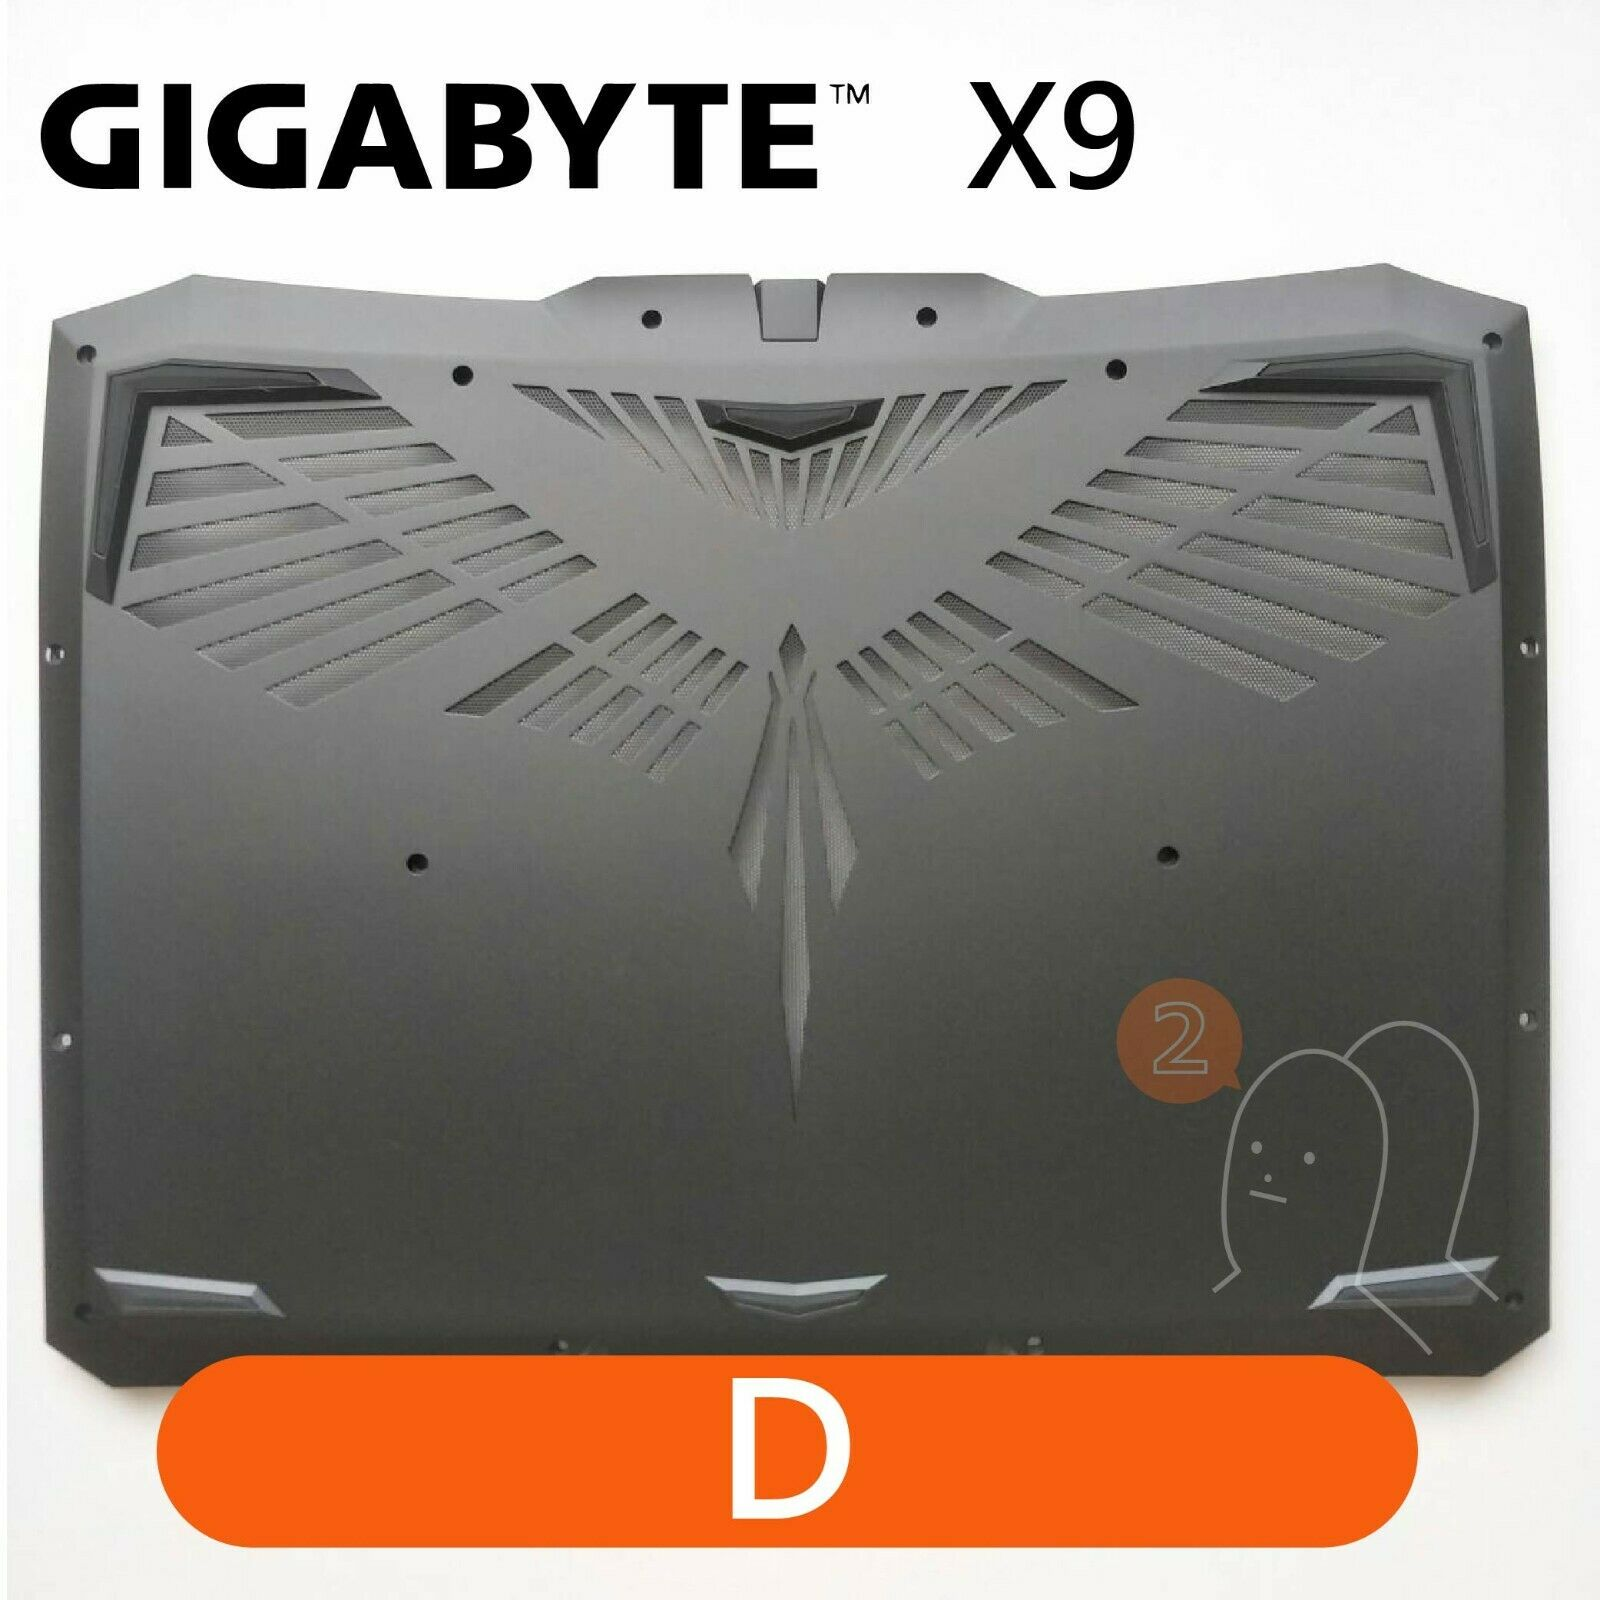 【2p3c】Replacement for GIGABYTE X9 Laptop LCD Cover : D(Bottom Base)